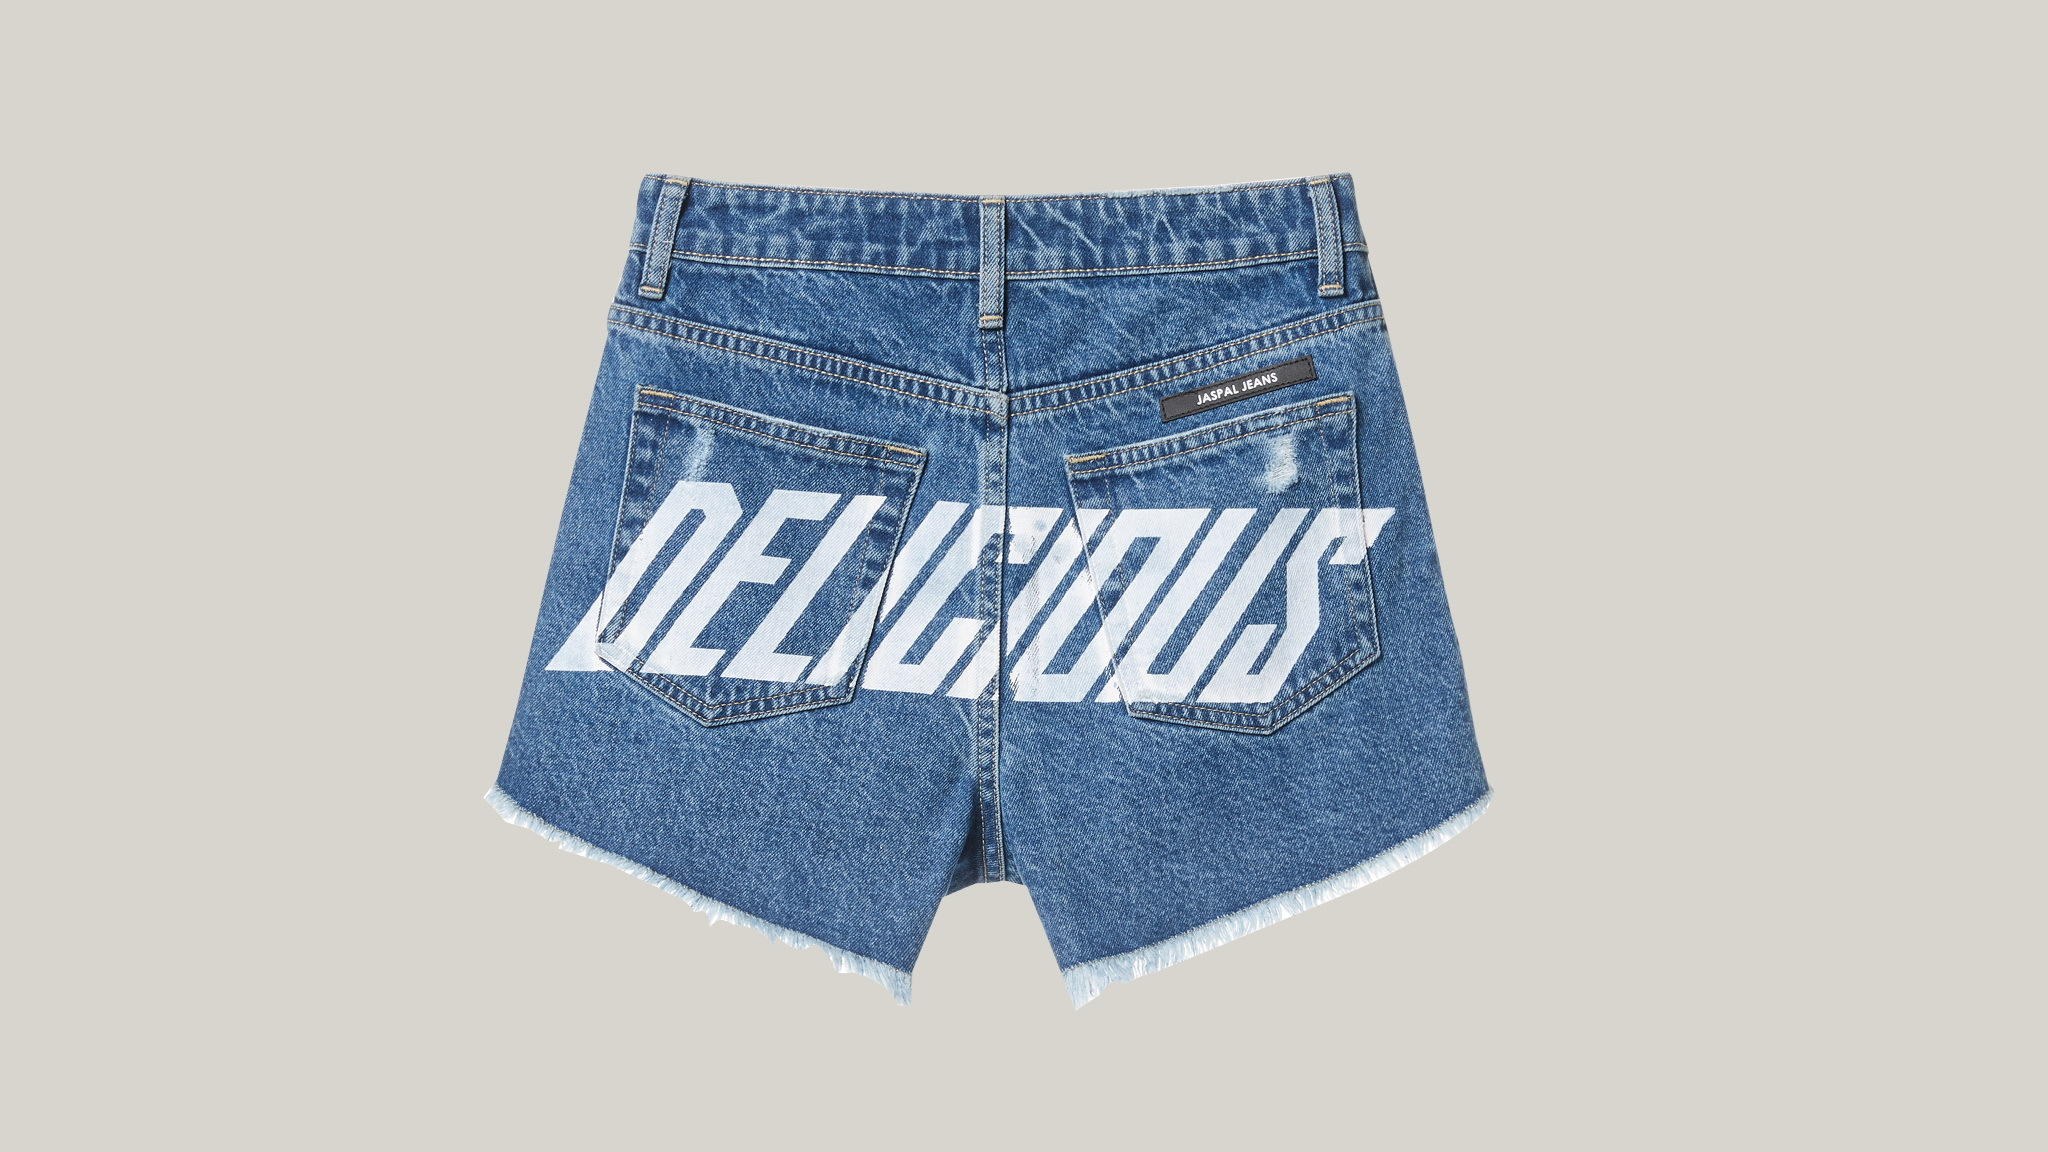 Denim shorts, Jaspal x Design Army, Gift Guide